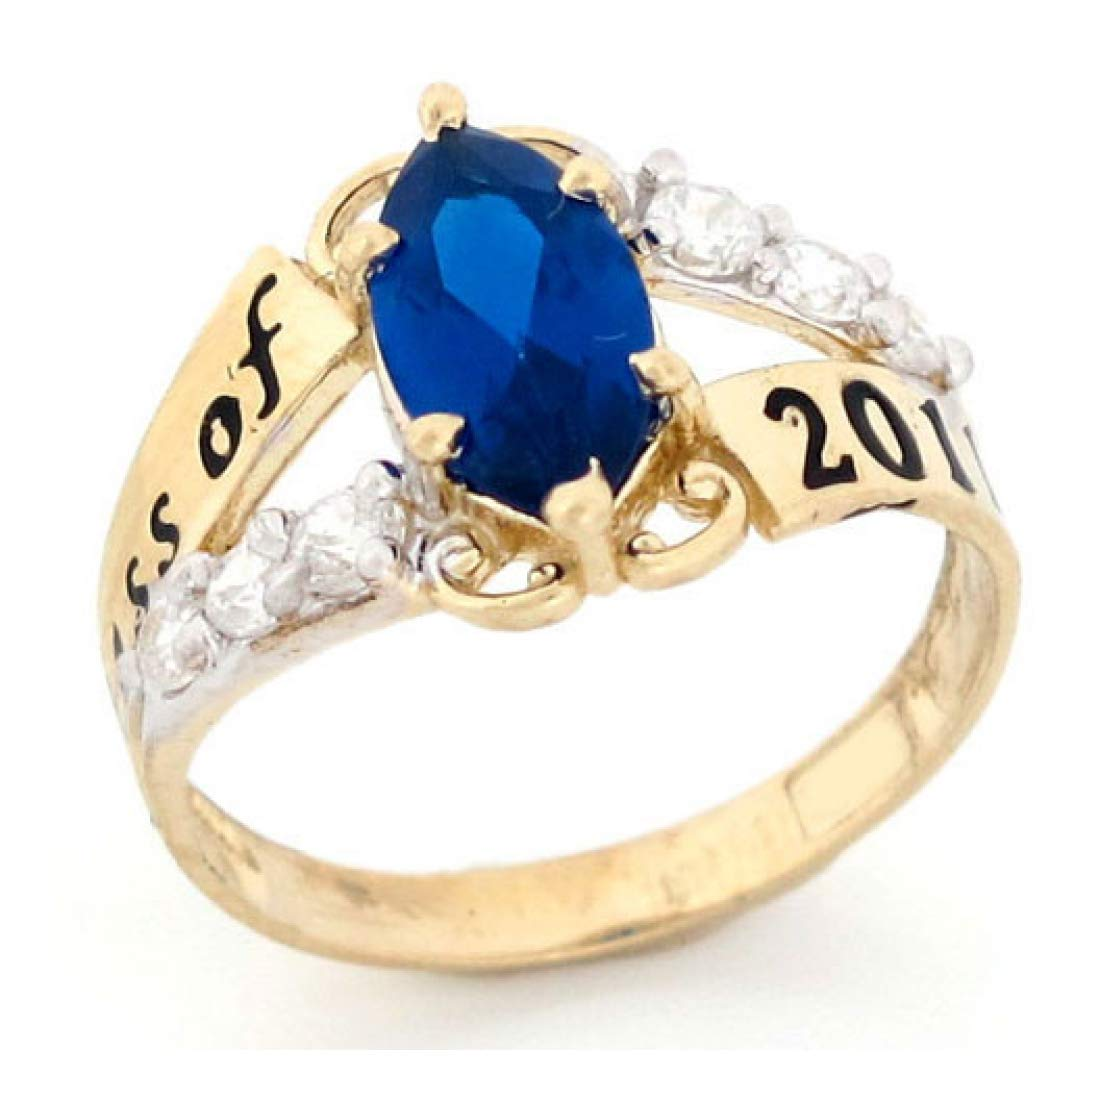 14k Gold CZ Simulated September Birthstone 2019 Graduation Ring